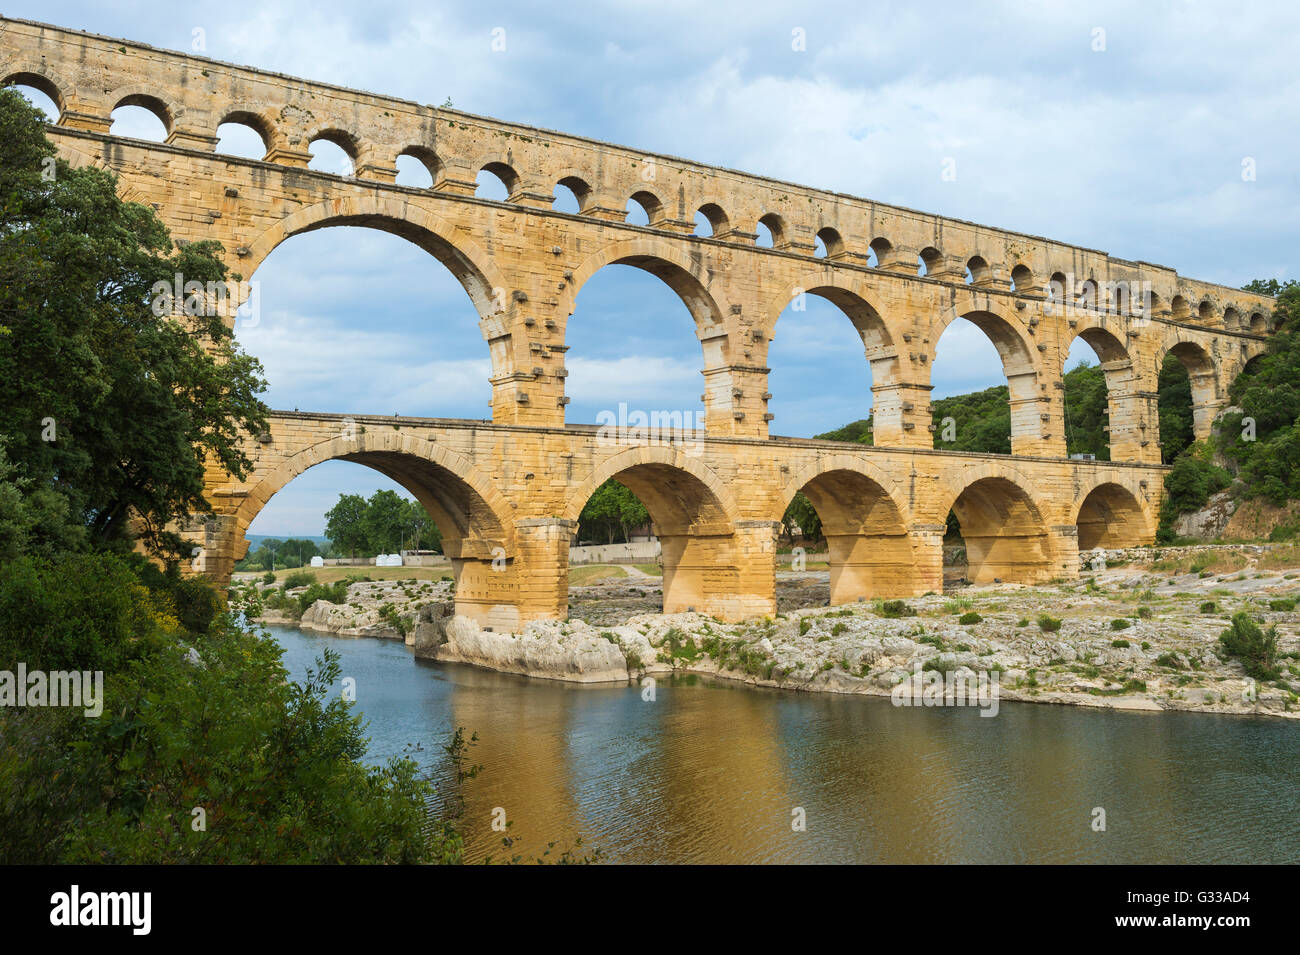 Pont du Gard, Languedoc Roussillon, France, Site du patrimoine mondial de l'UNESCO Photo Stock